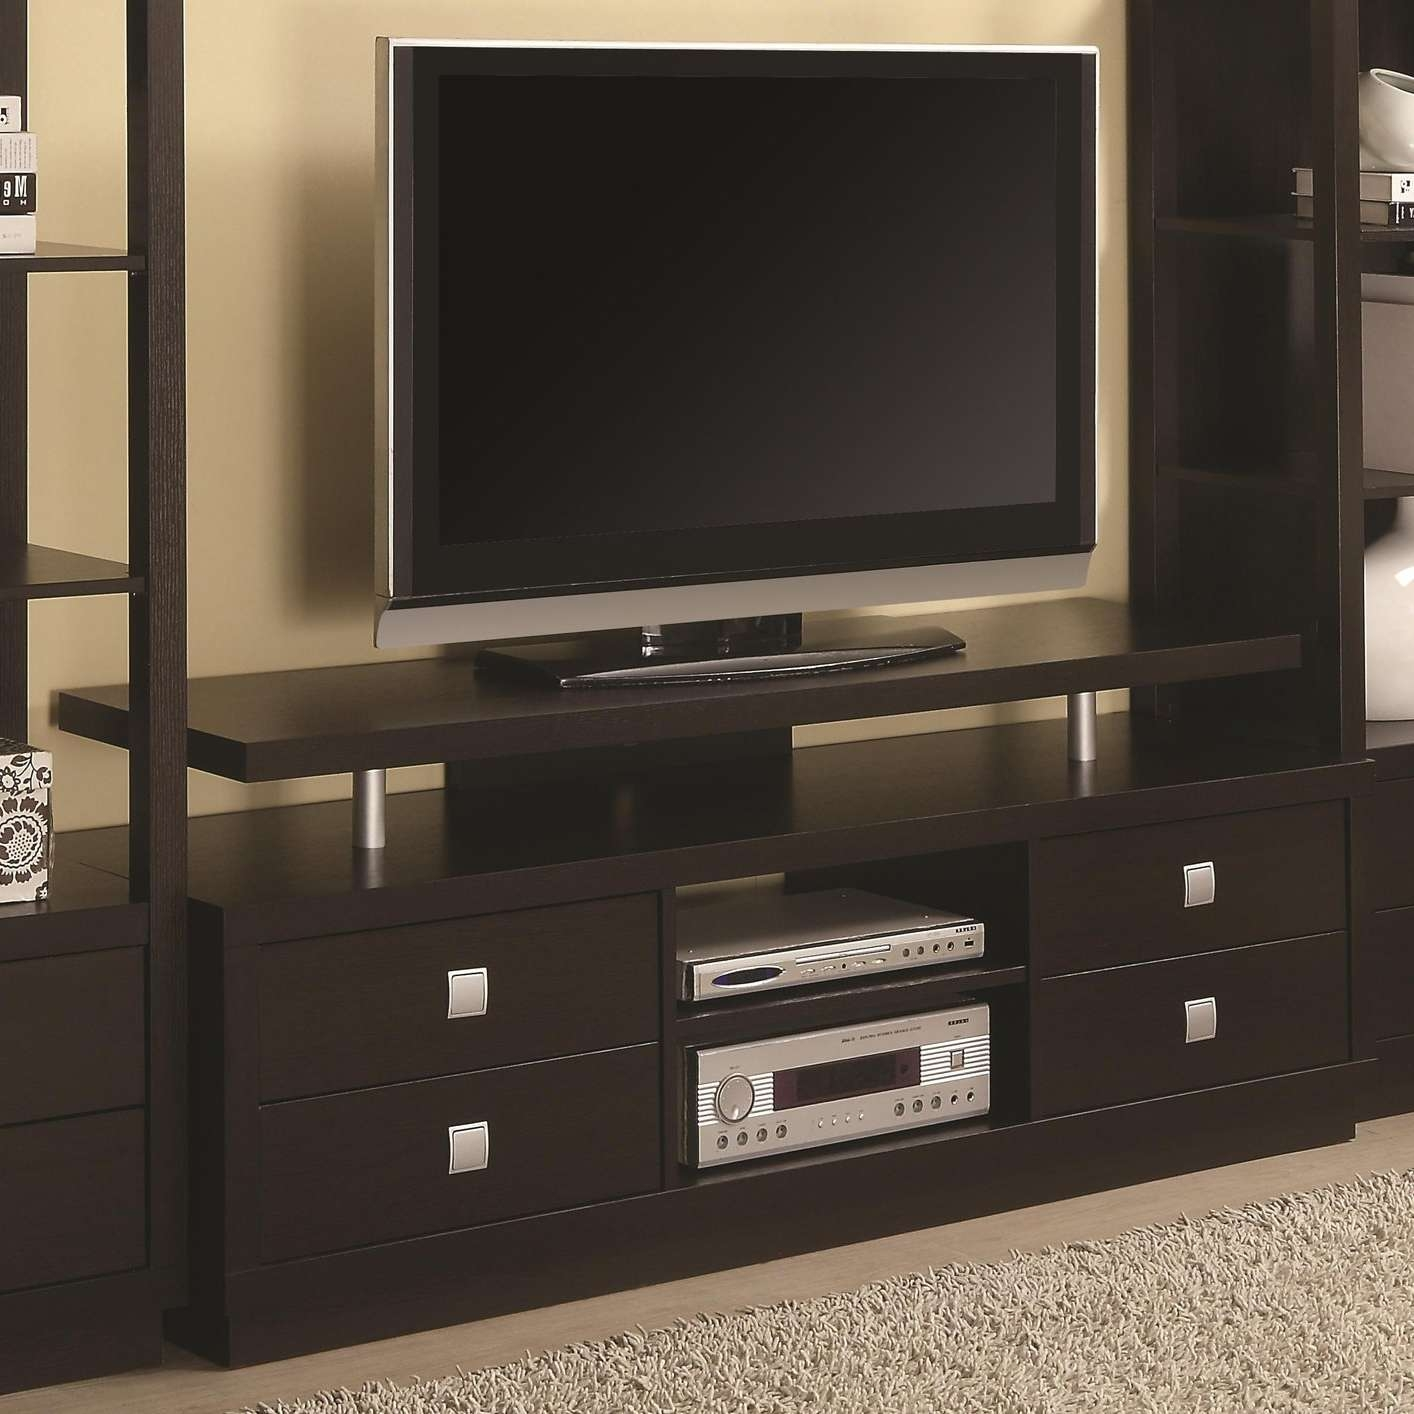 Brown Wood Tv Stand – Steal A Sofa Furniture Outlet Los Angeles Ca With Wood Tv Stands (View 9 of 15)